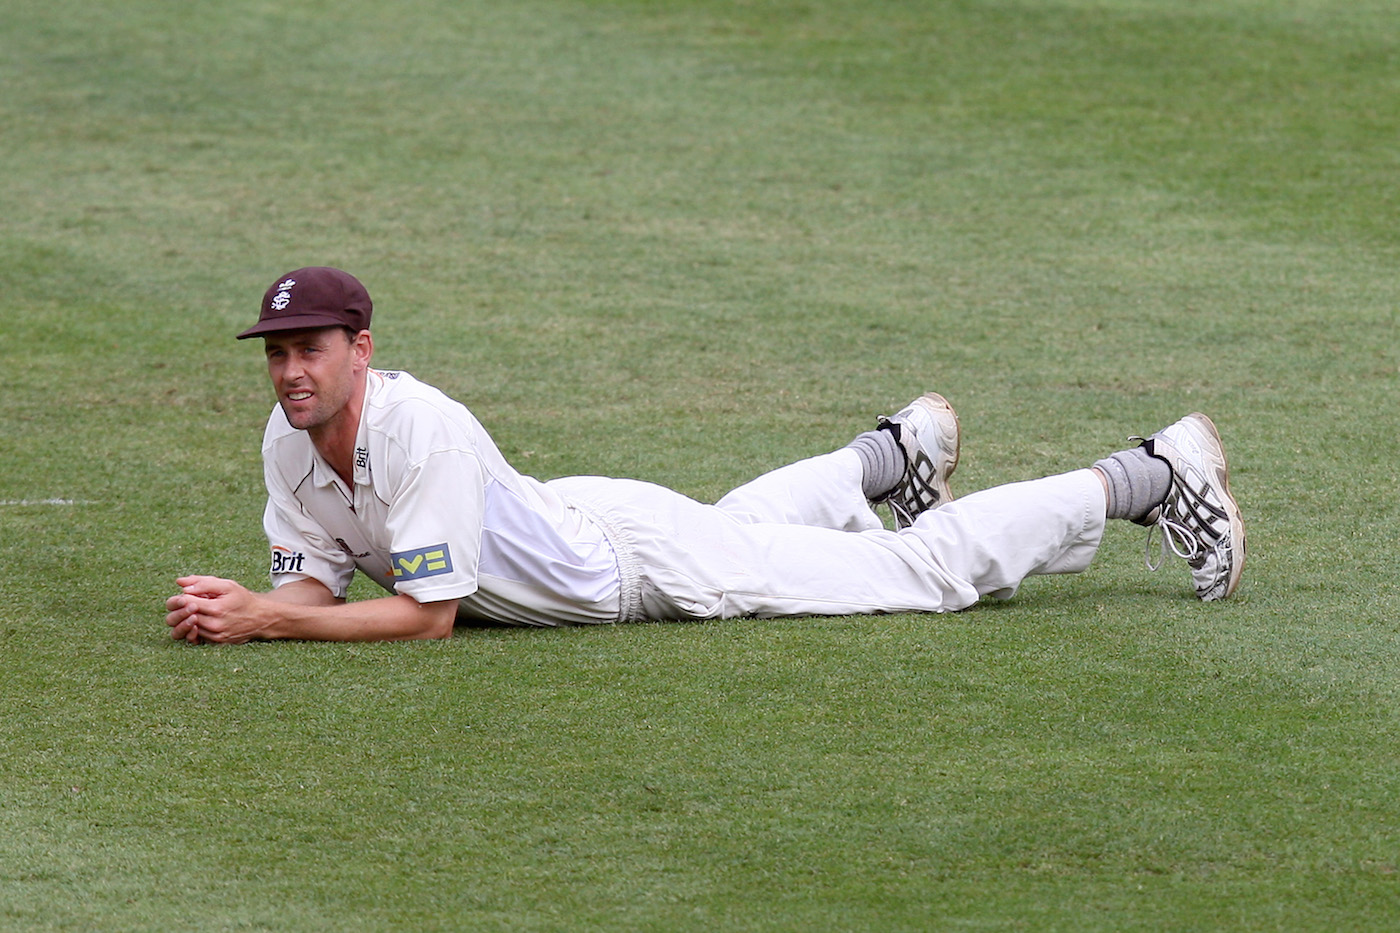 After his only Test, Nicholson continued playing first-class cricket in Australia and England